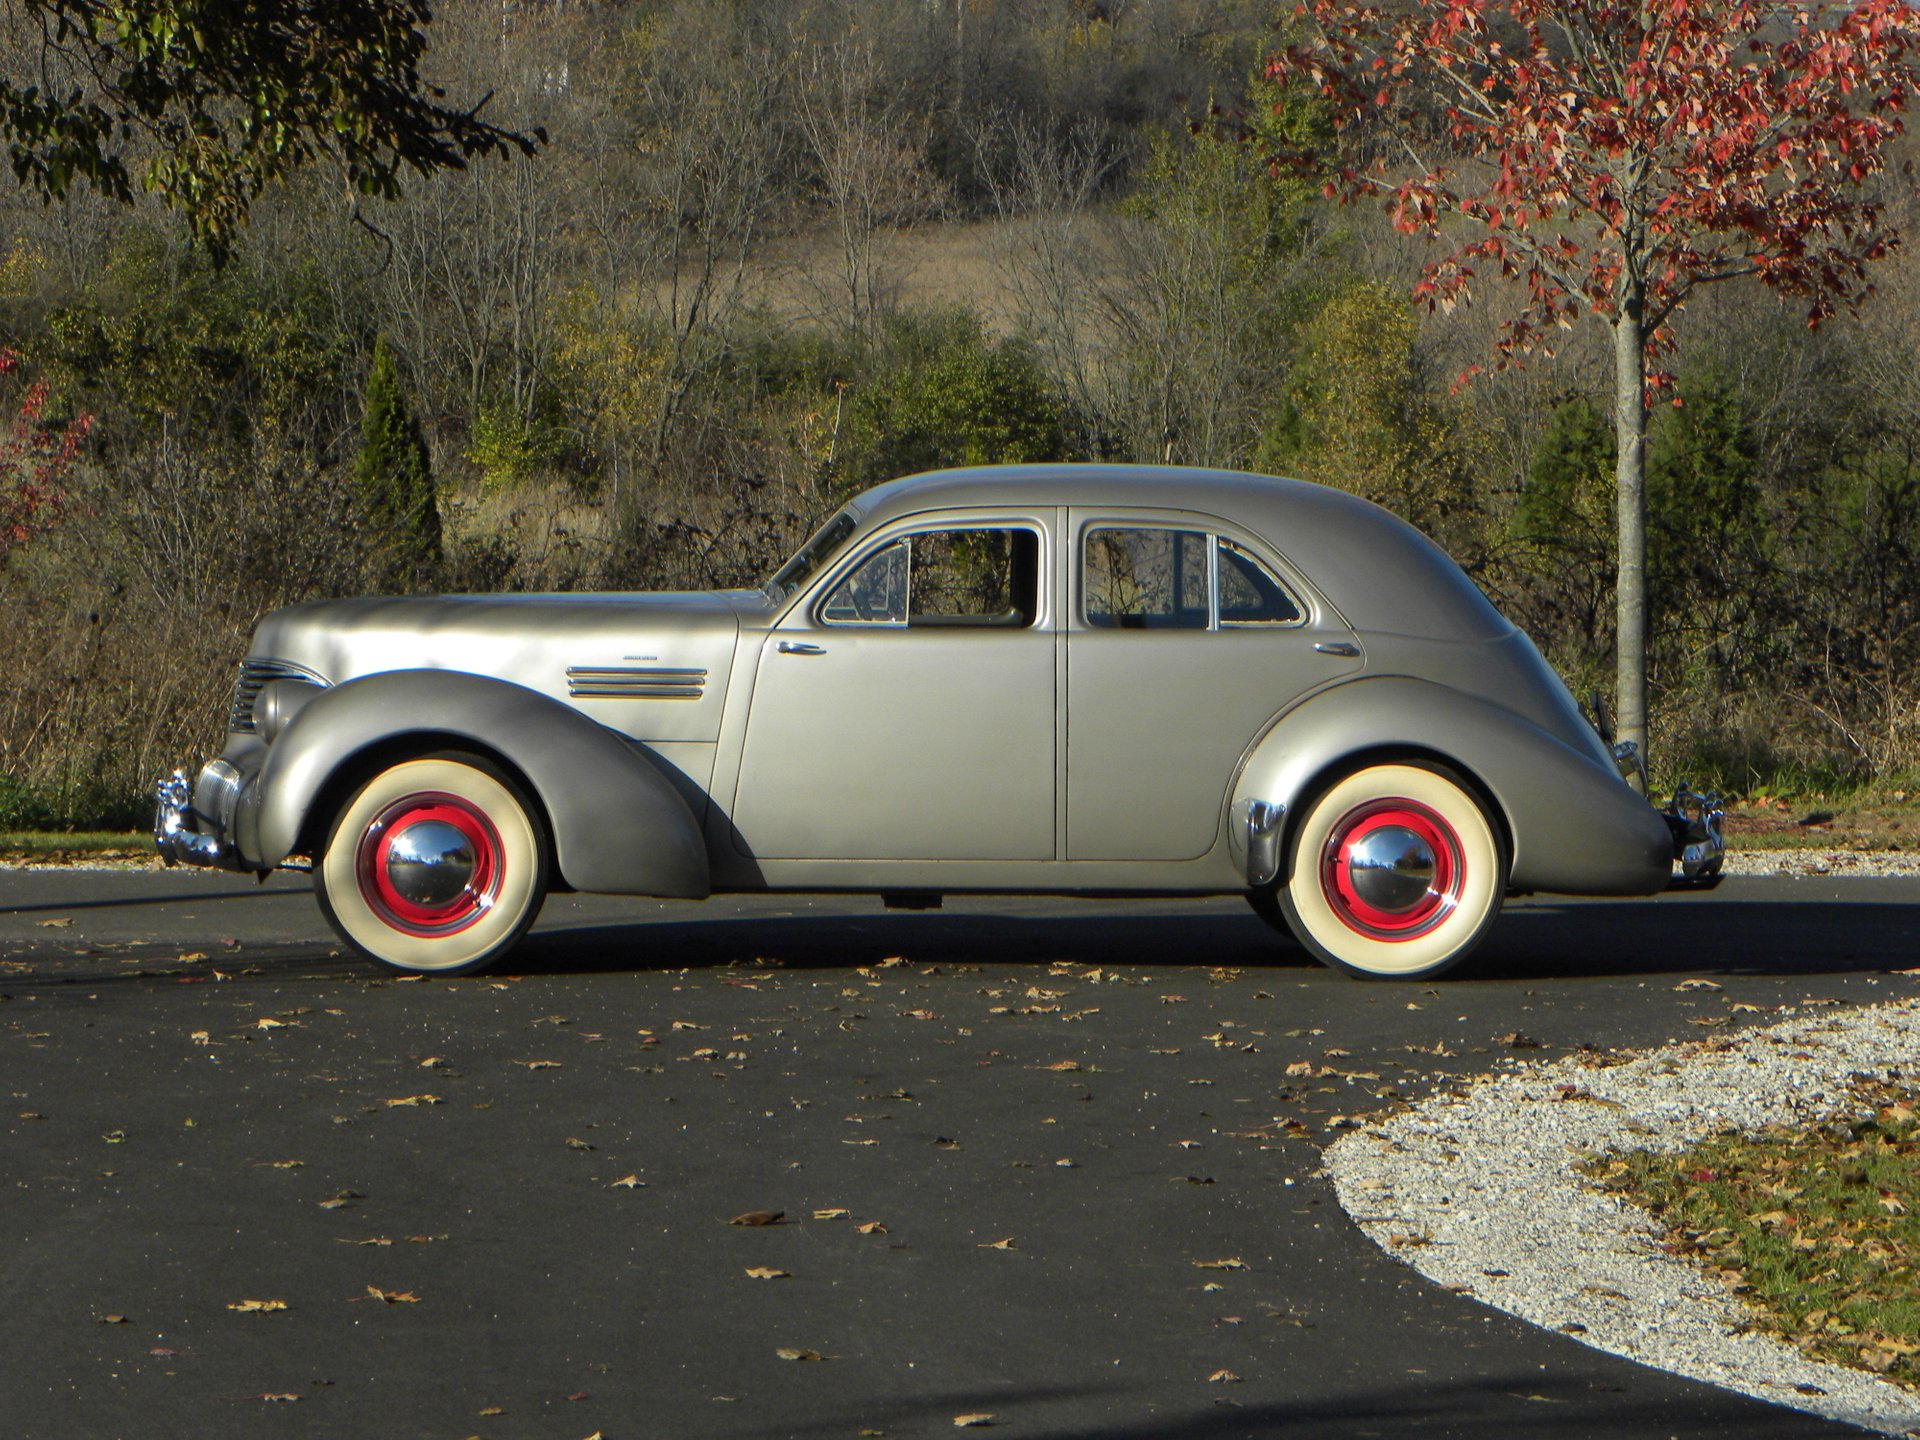 1941 graham hollywood model 113